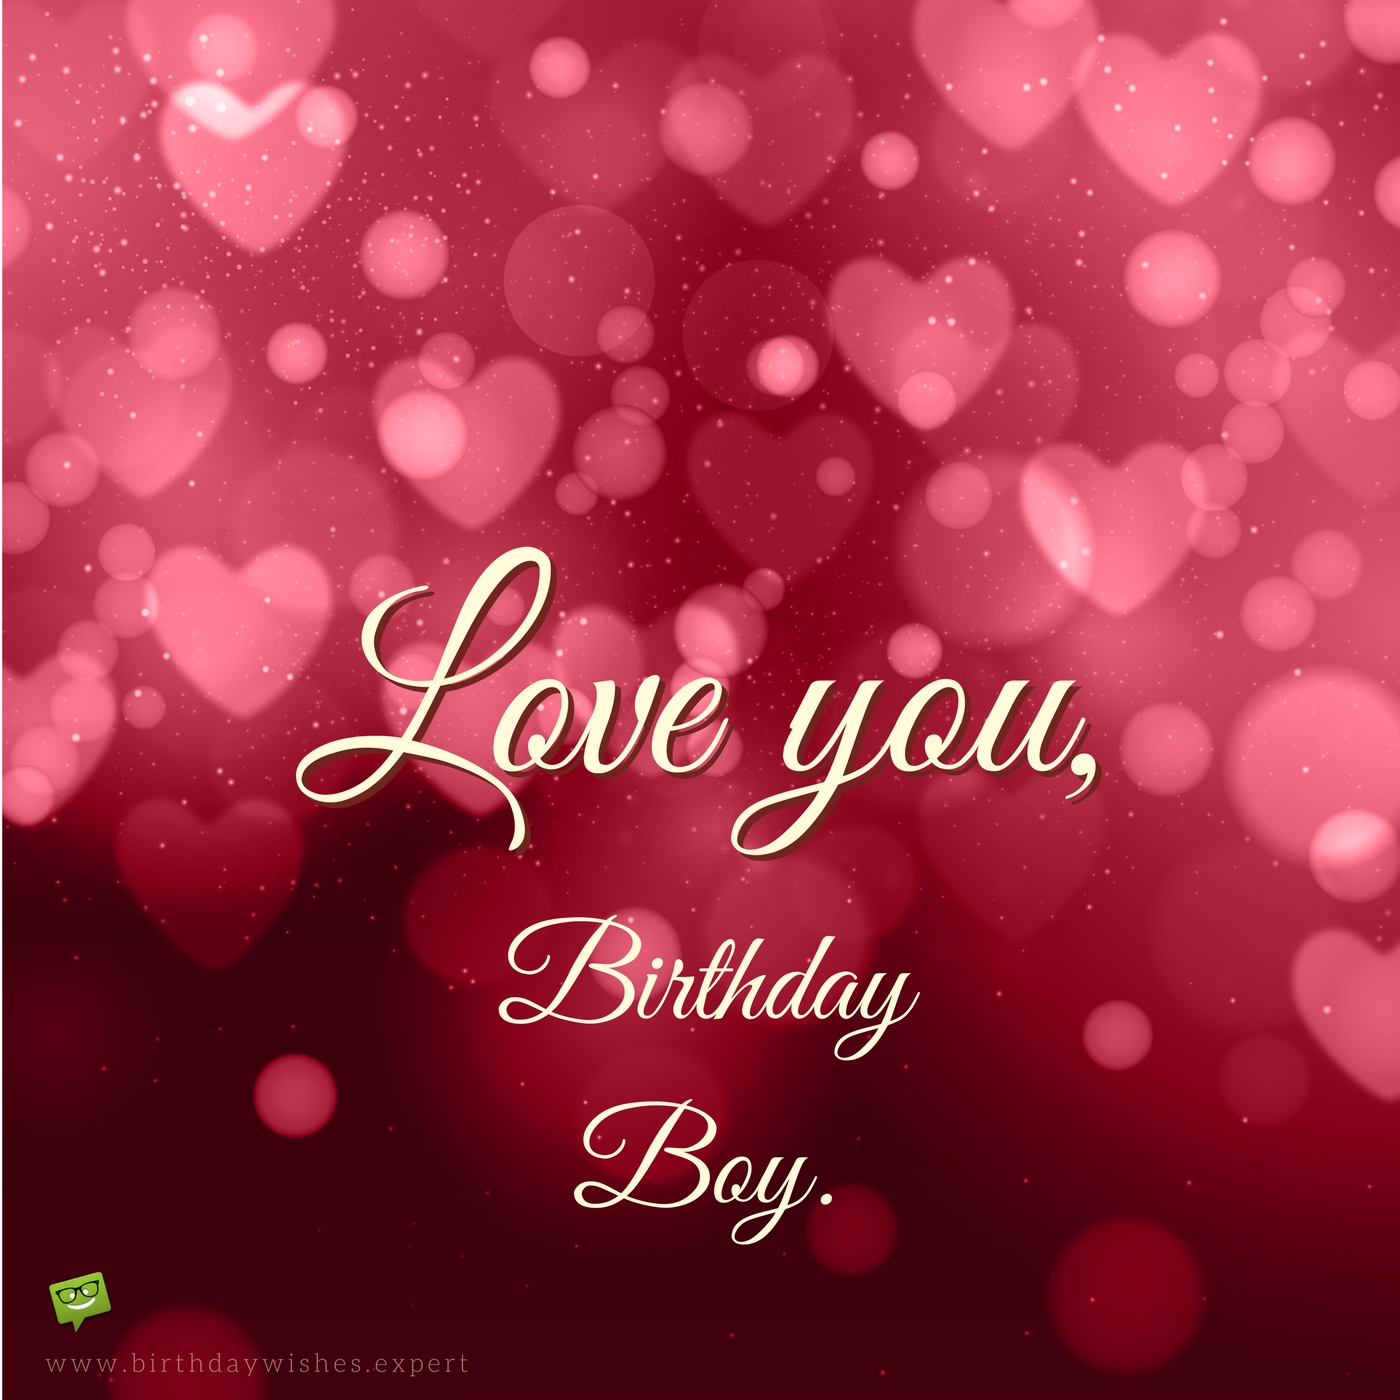 Love You Birthday Wallpaper : Birthday Wishes for Boyfriend Pictures, Images, Graphics for Facebook, Whatsapp